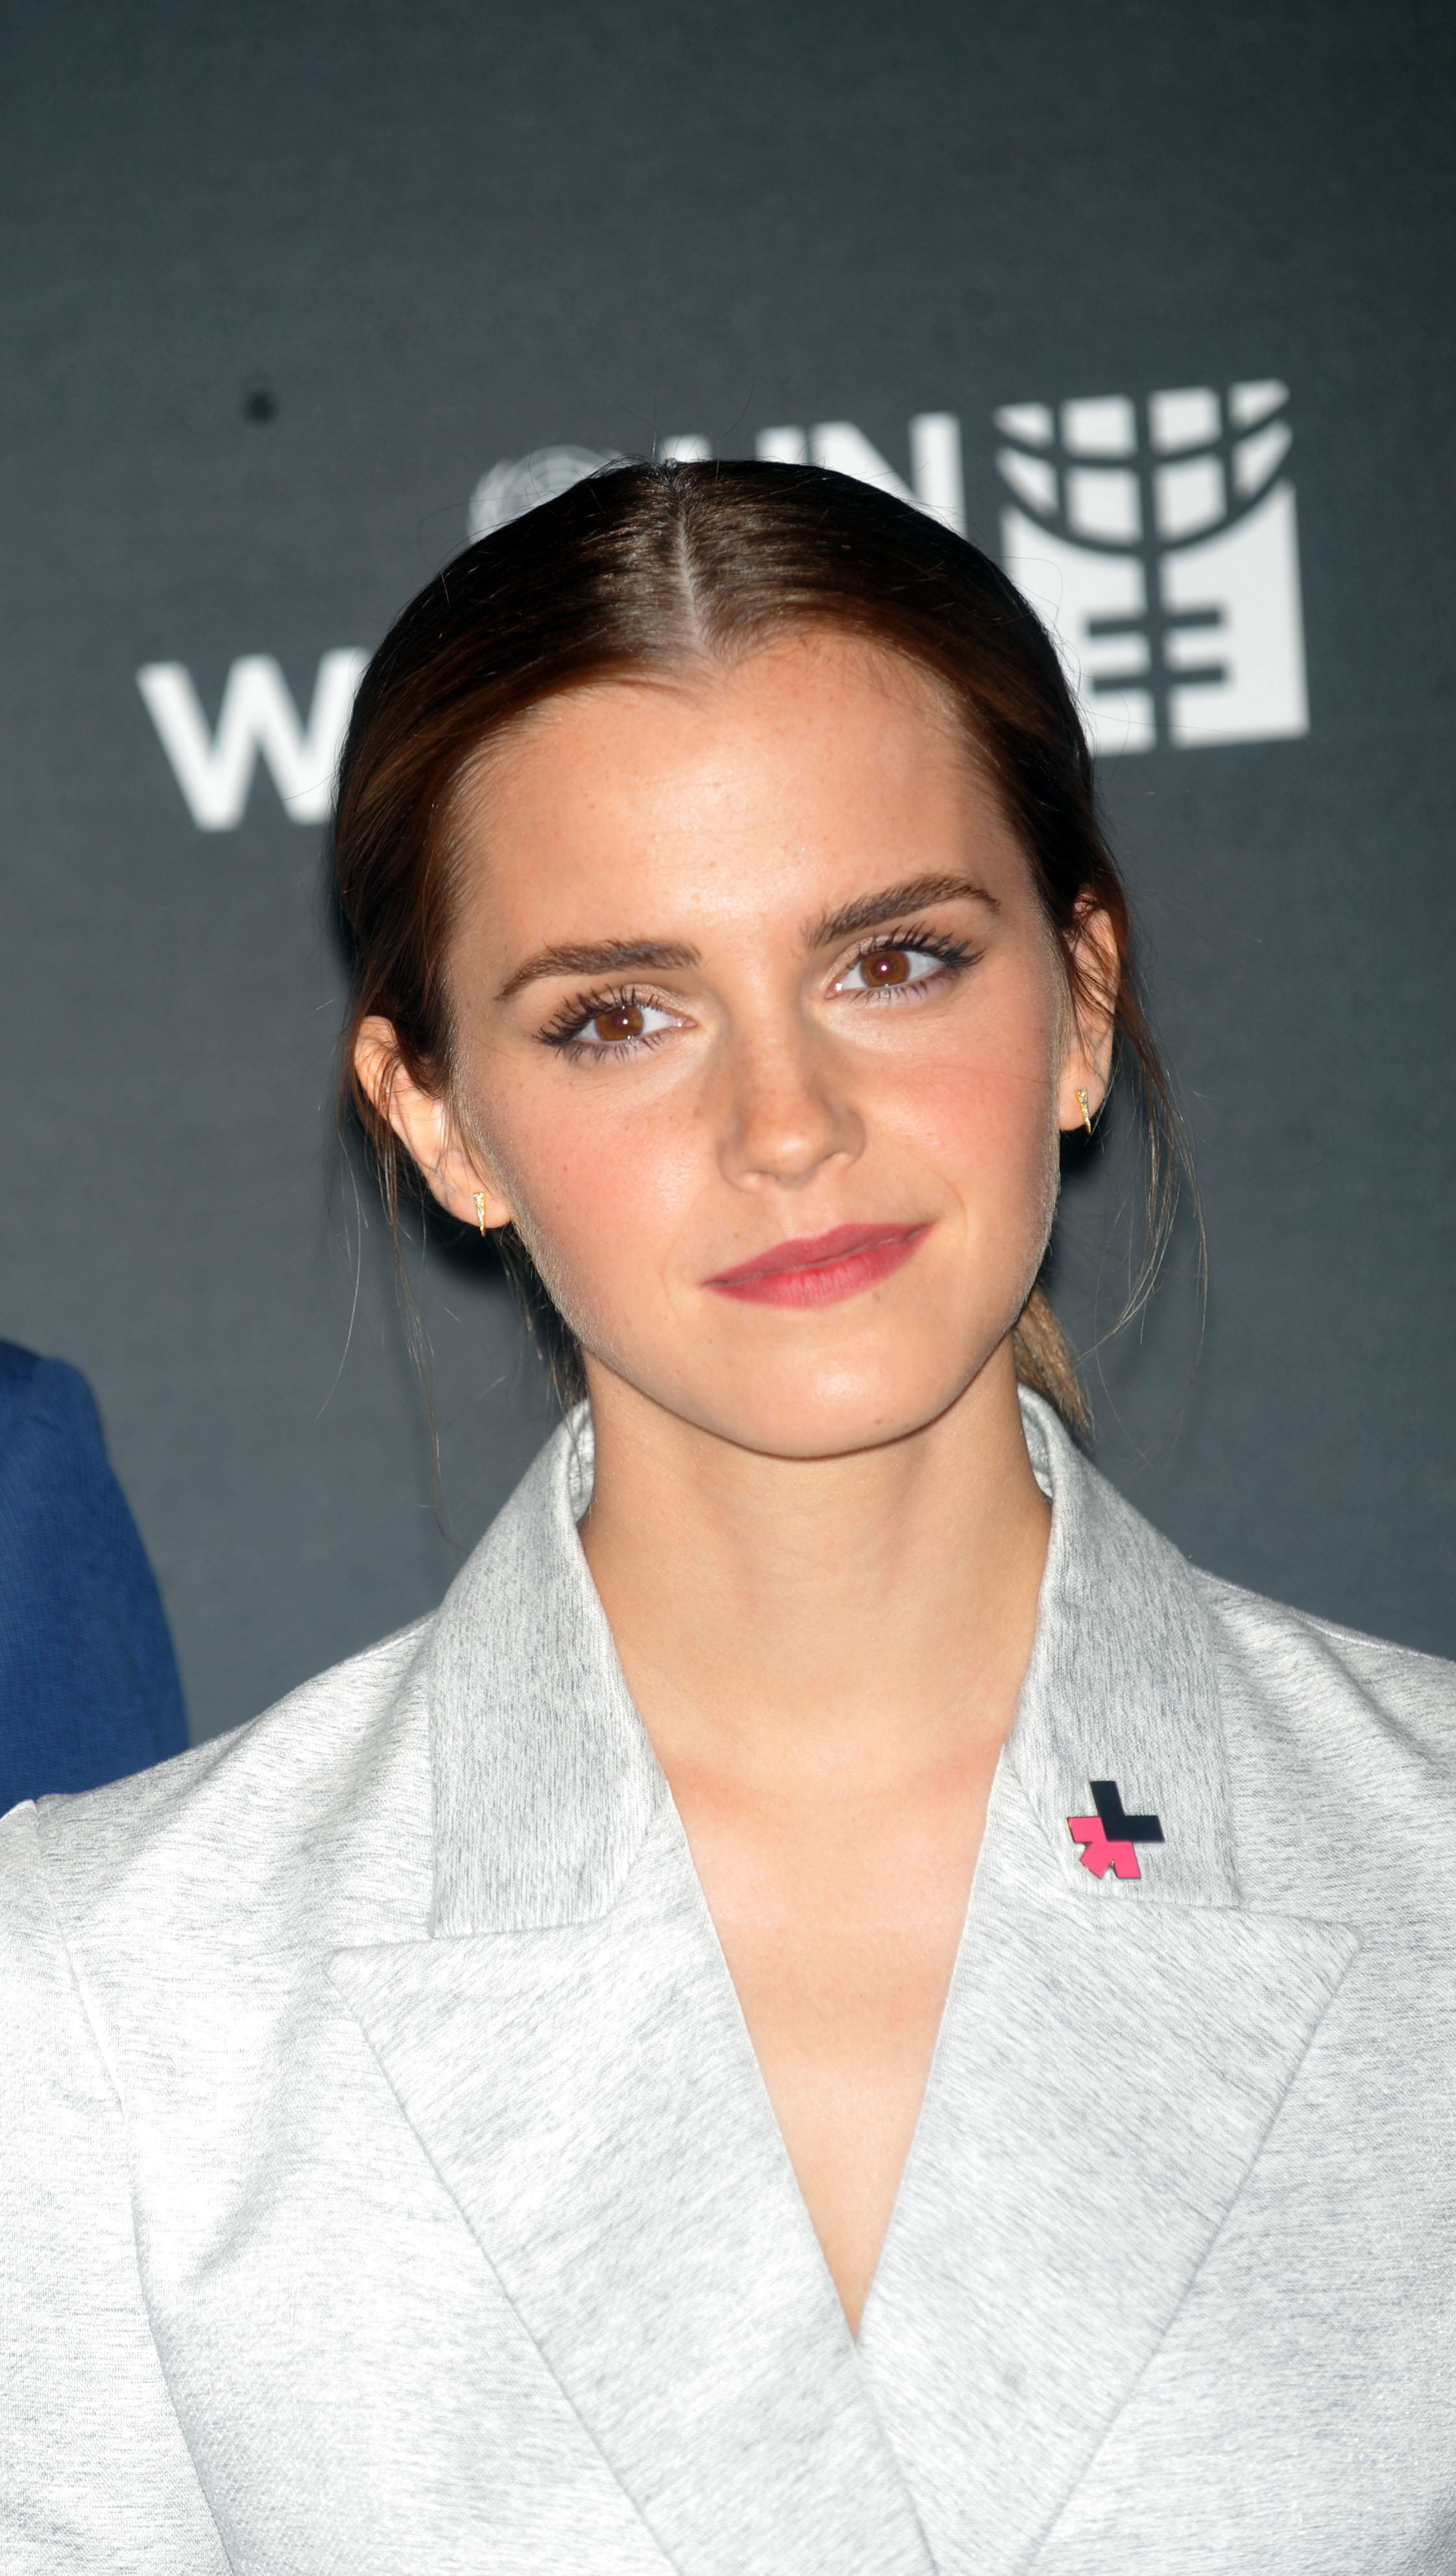 Emma Watson attends the launch of the HeForShe Campaign at the United Nations on September 20, 2014 in New York City.